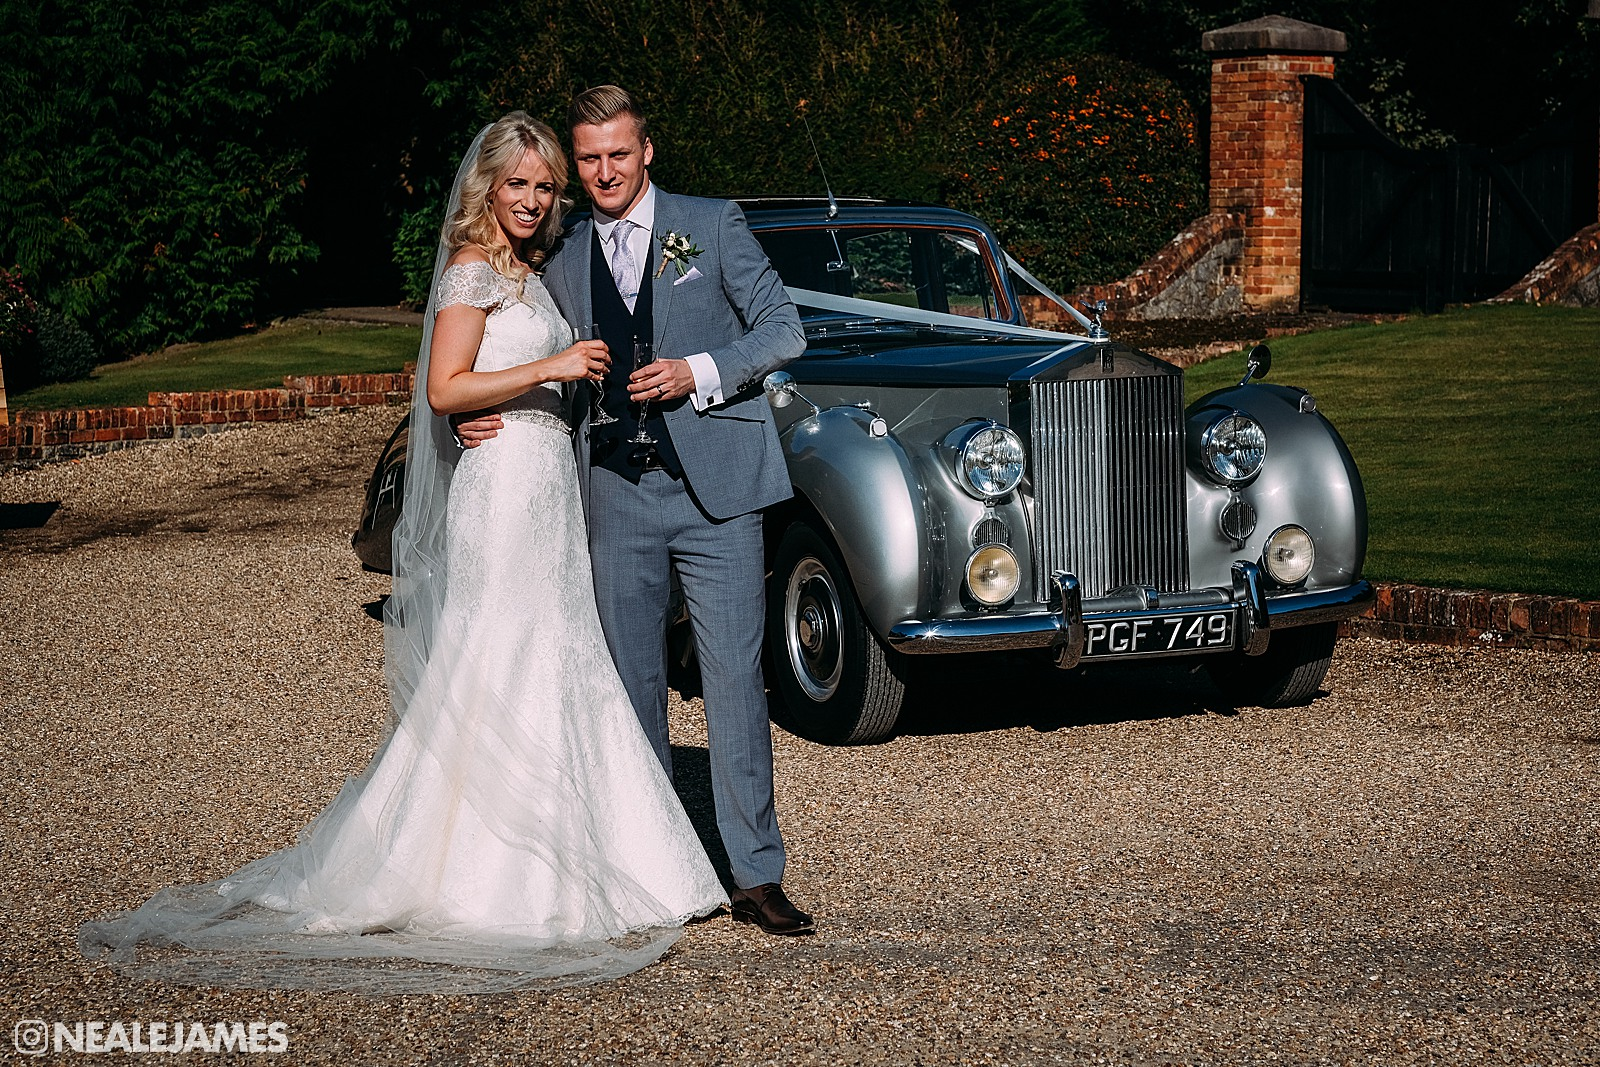 Colour picture of a bride and groom after they have just arrived at the Bijou wedding venue, Cain Manor